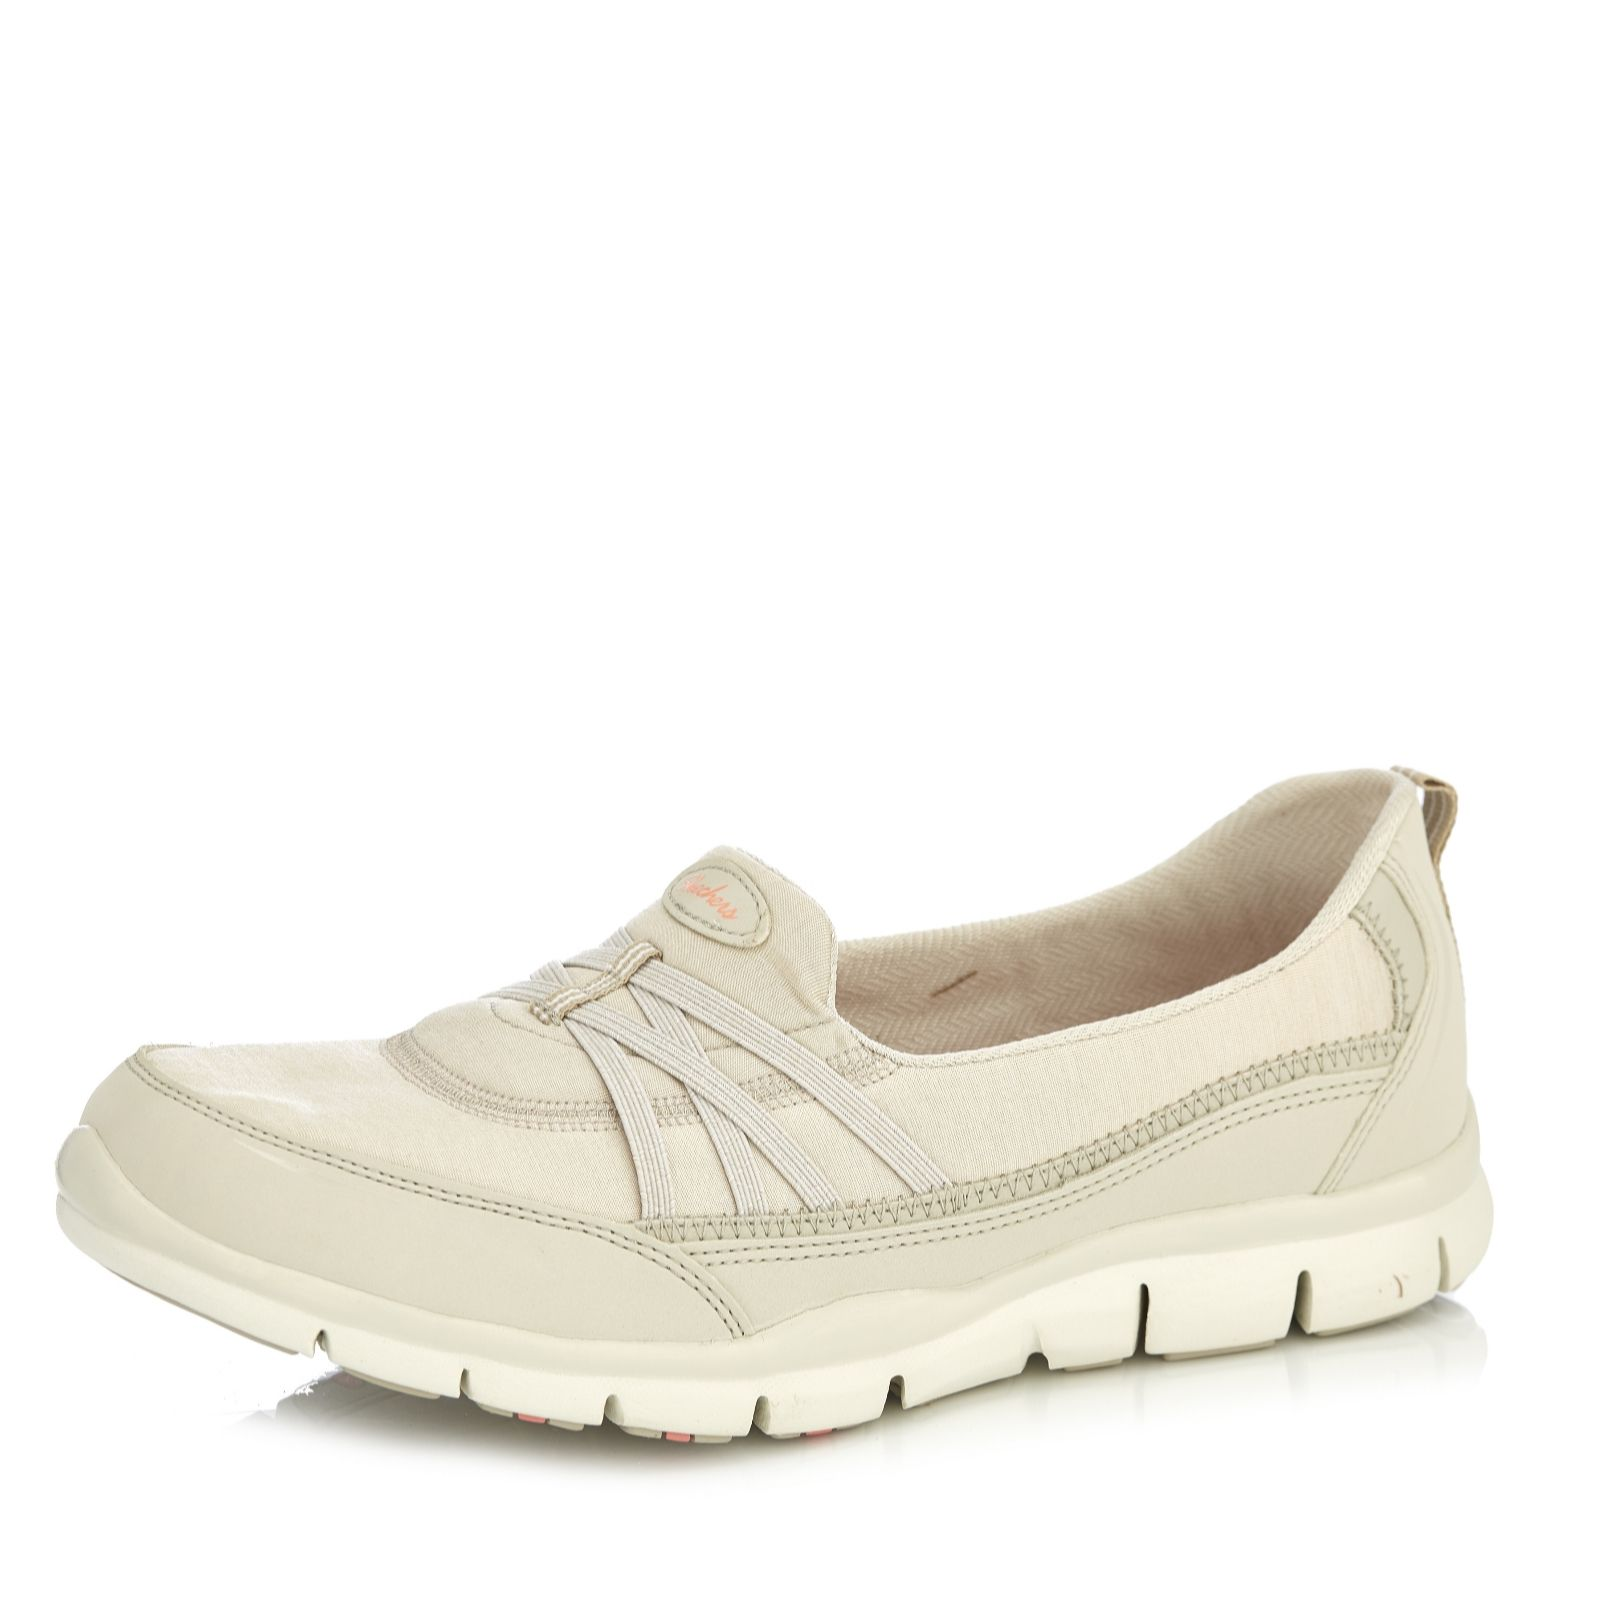 938f2ccab9d9 Skechers Gratis True Heart Heathered Jersey Slip On Trainer with Memory  Foam - QVC UK